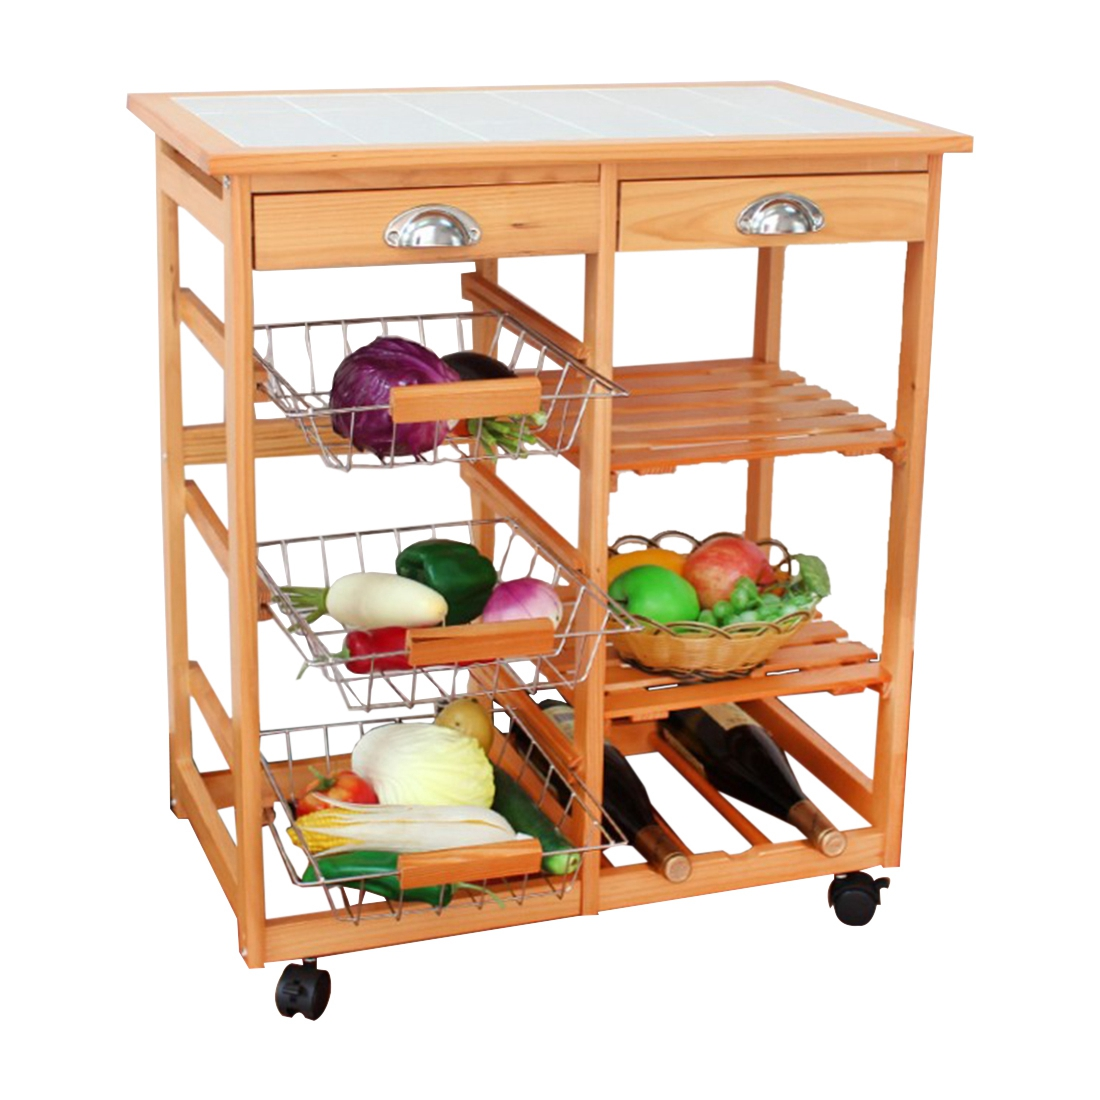 Kitchen Trolley Online Buy Wholesale Wooden Kitchen Trolley From China Wooden